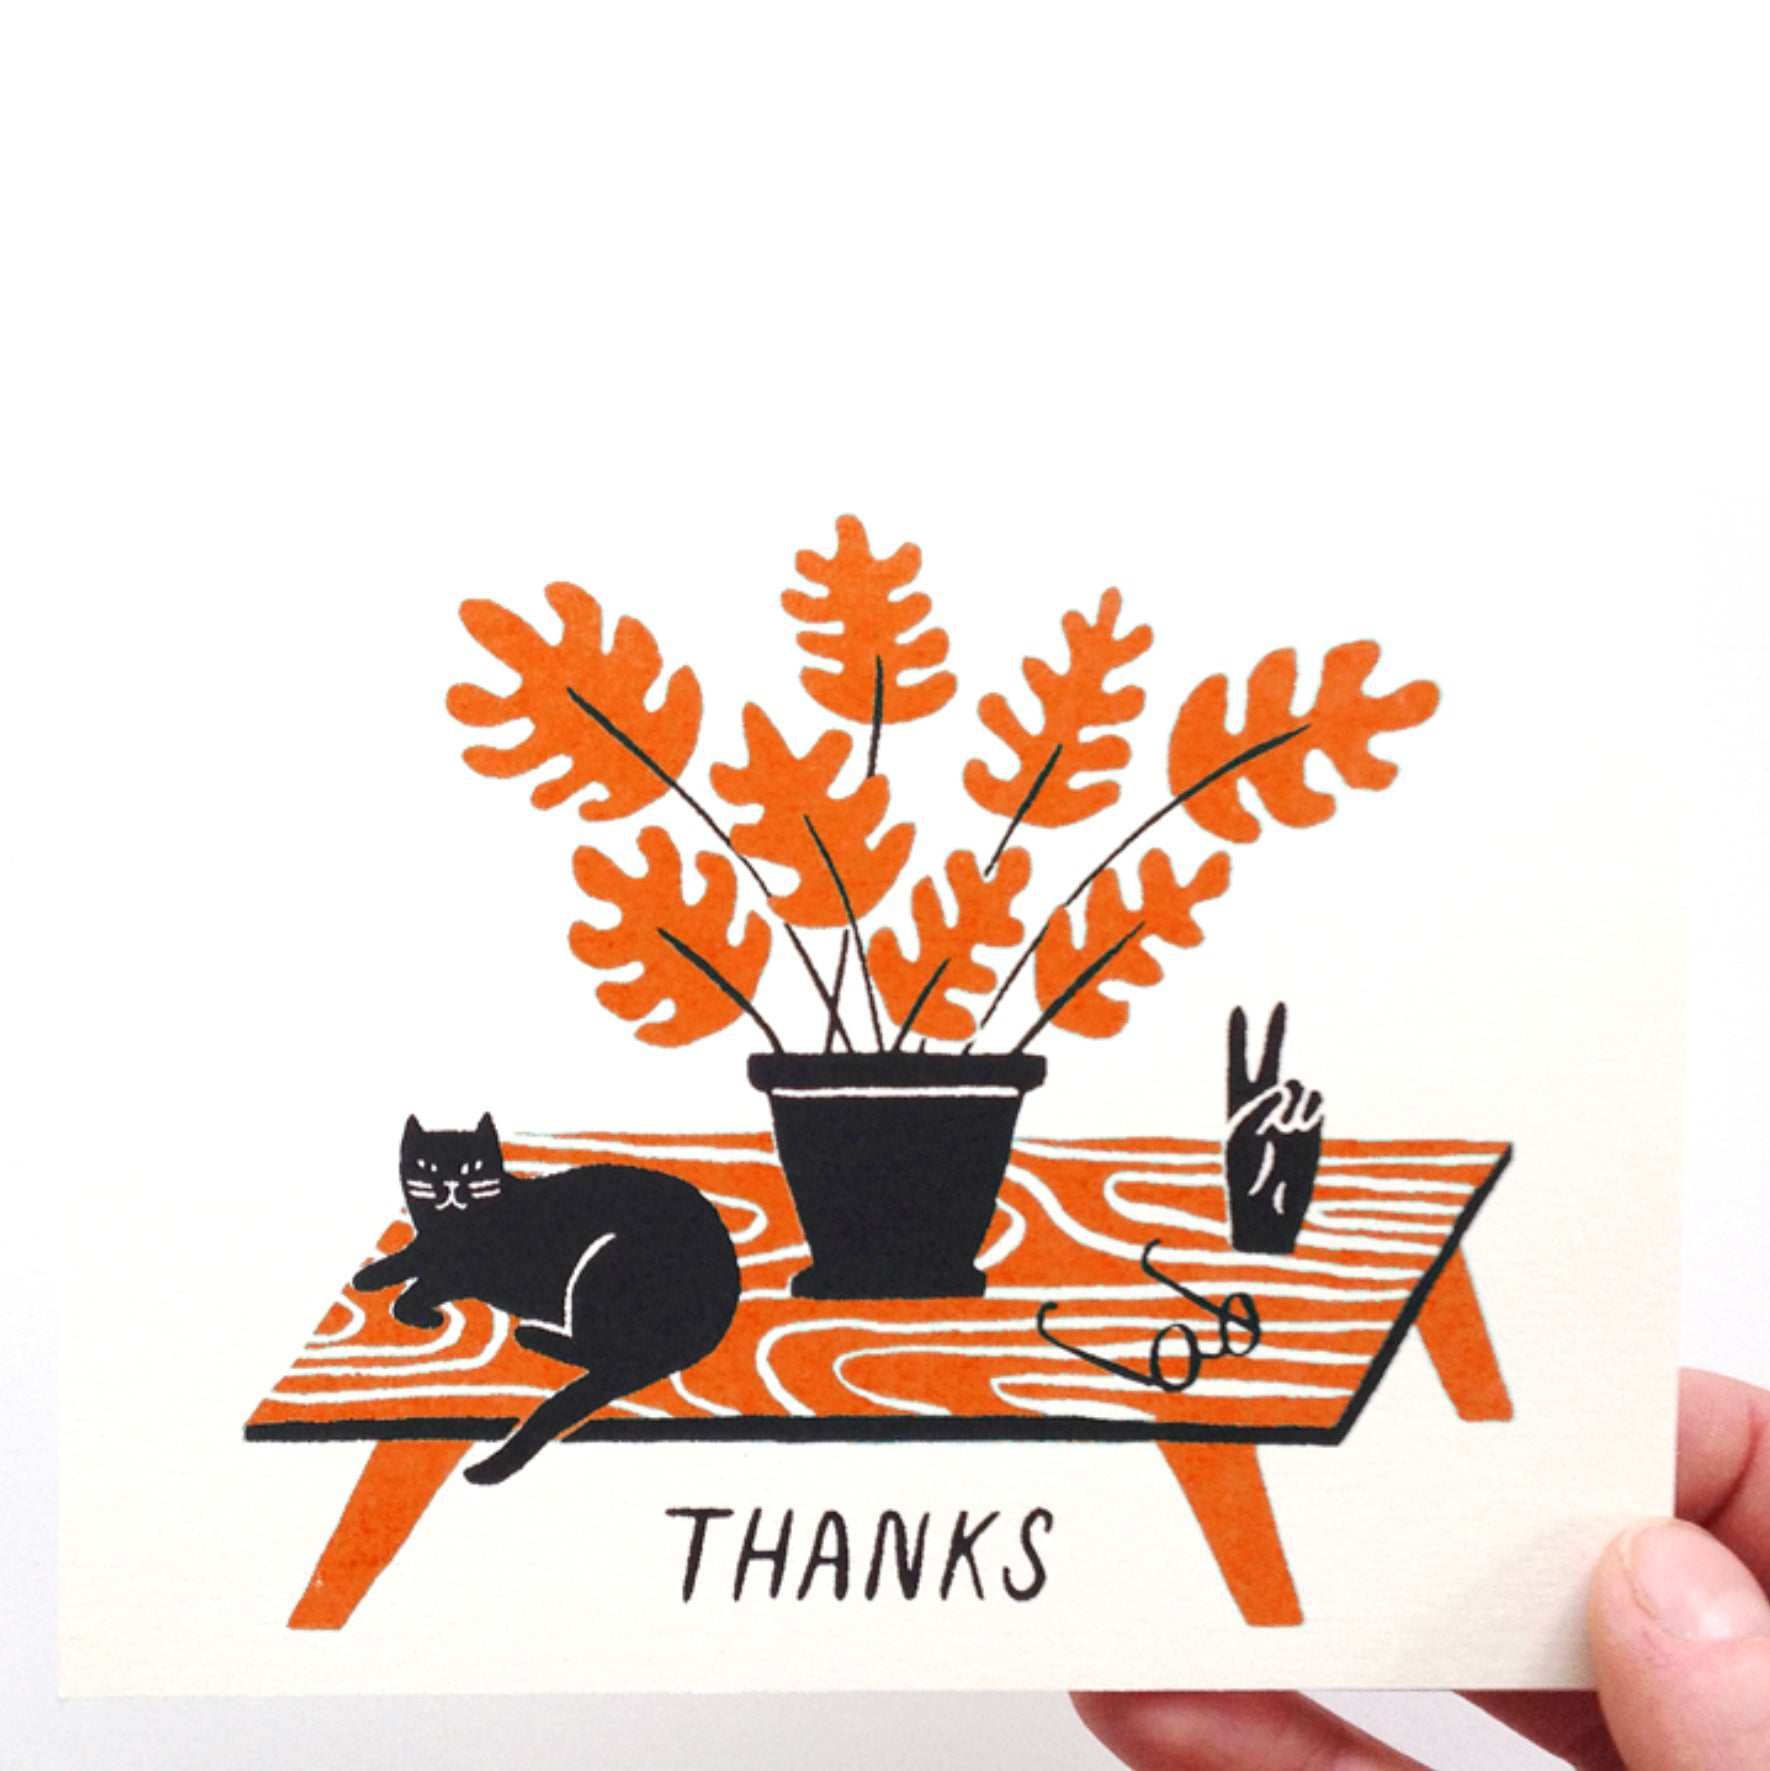 Thanks Card - Orange